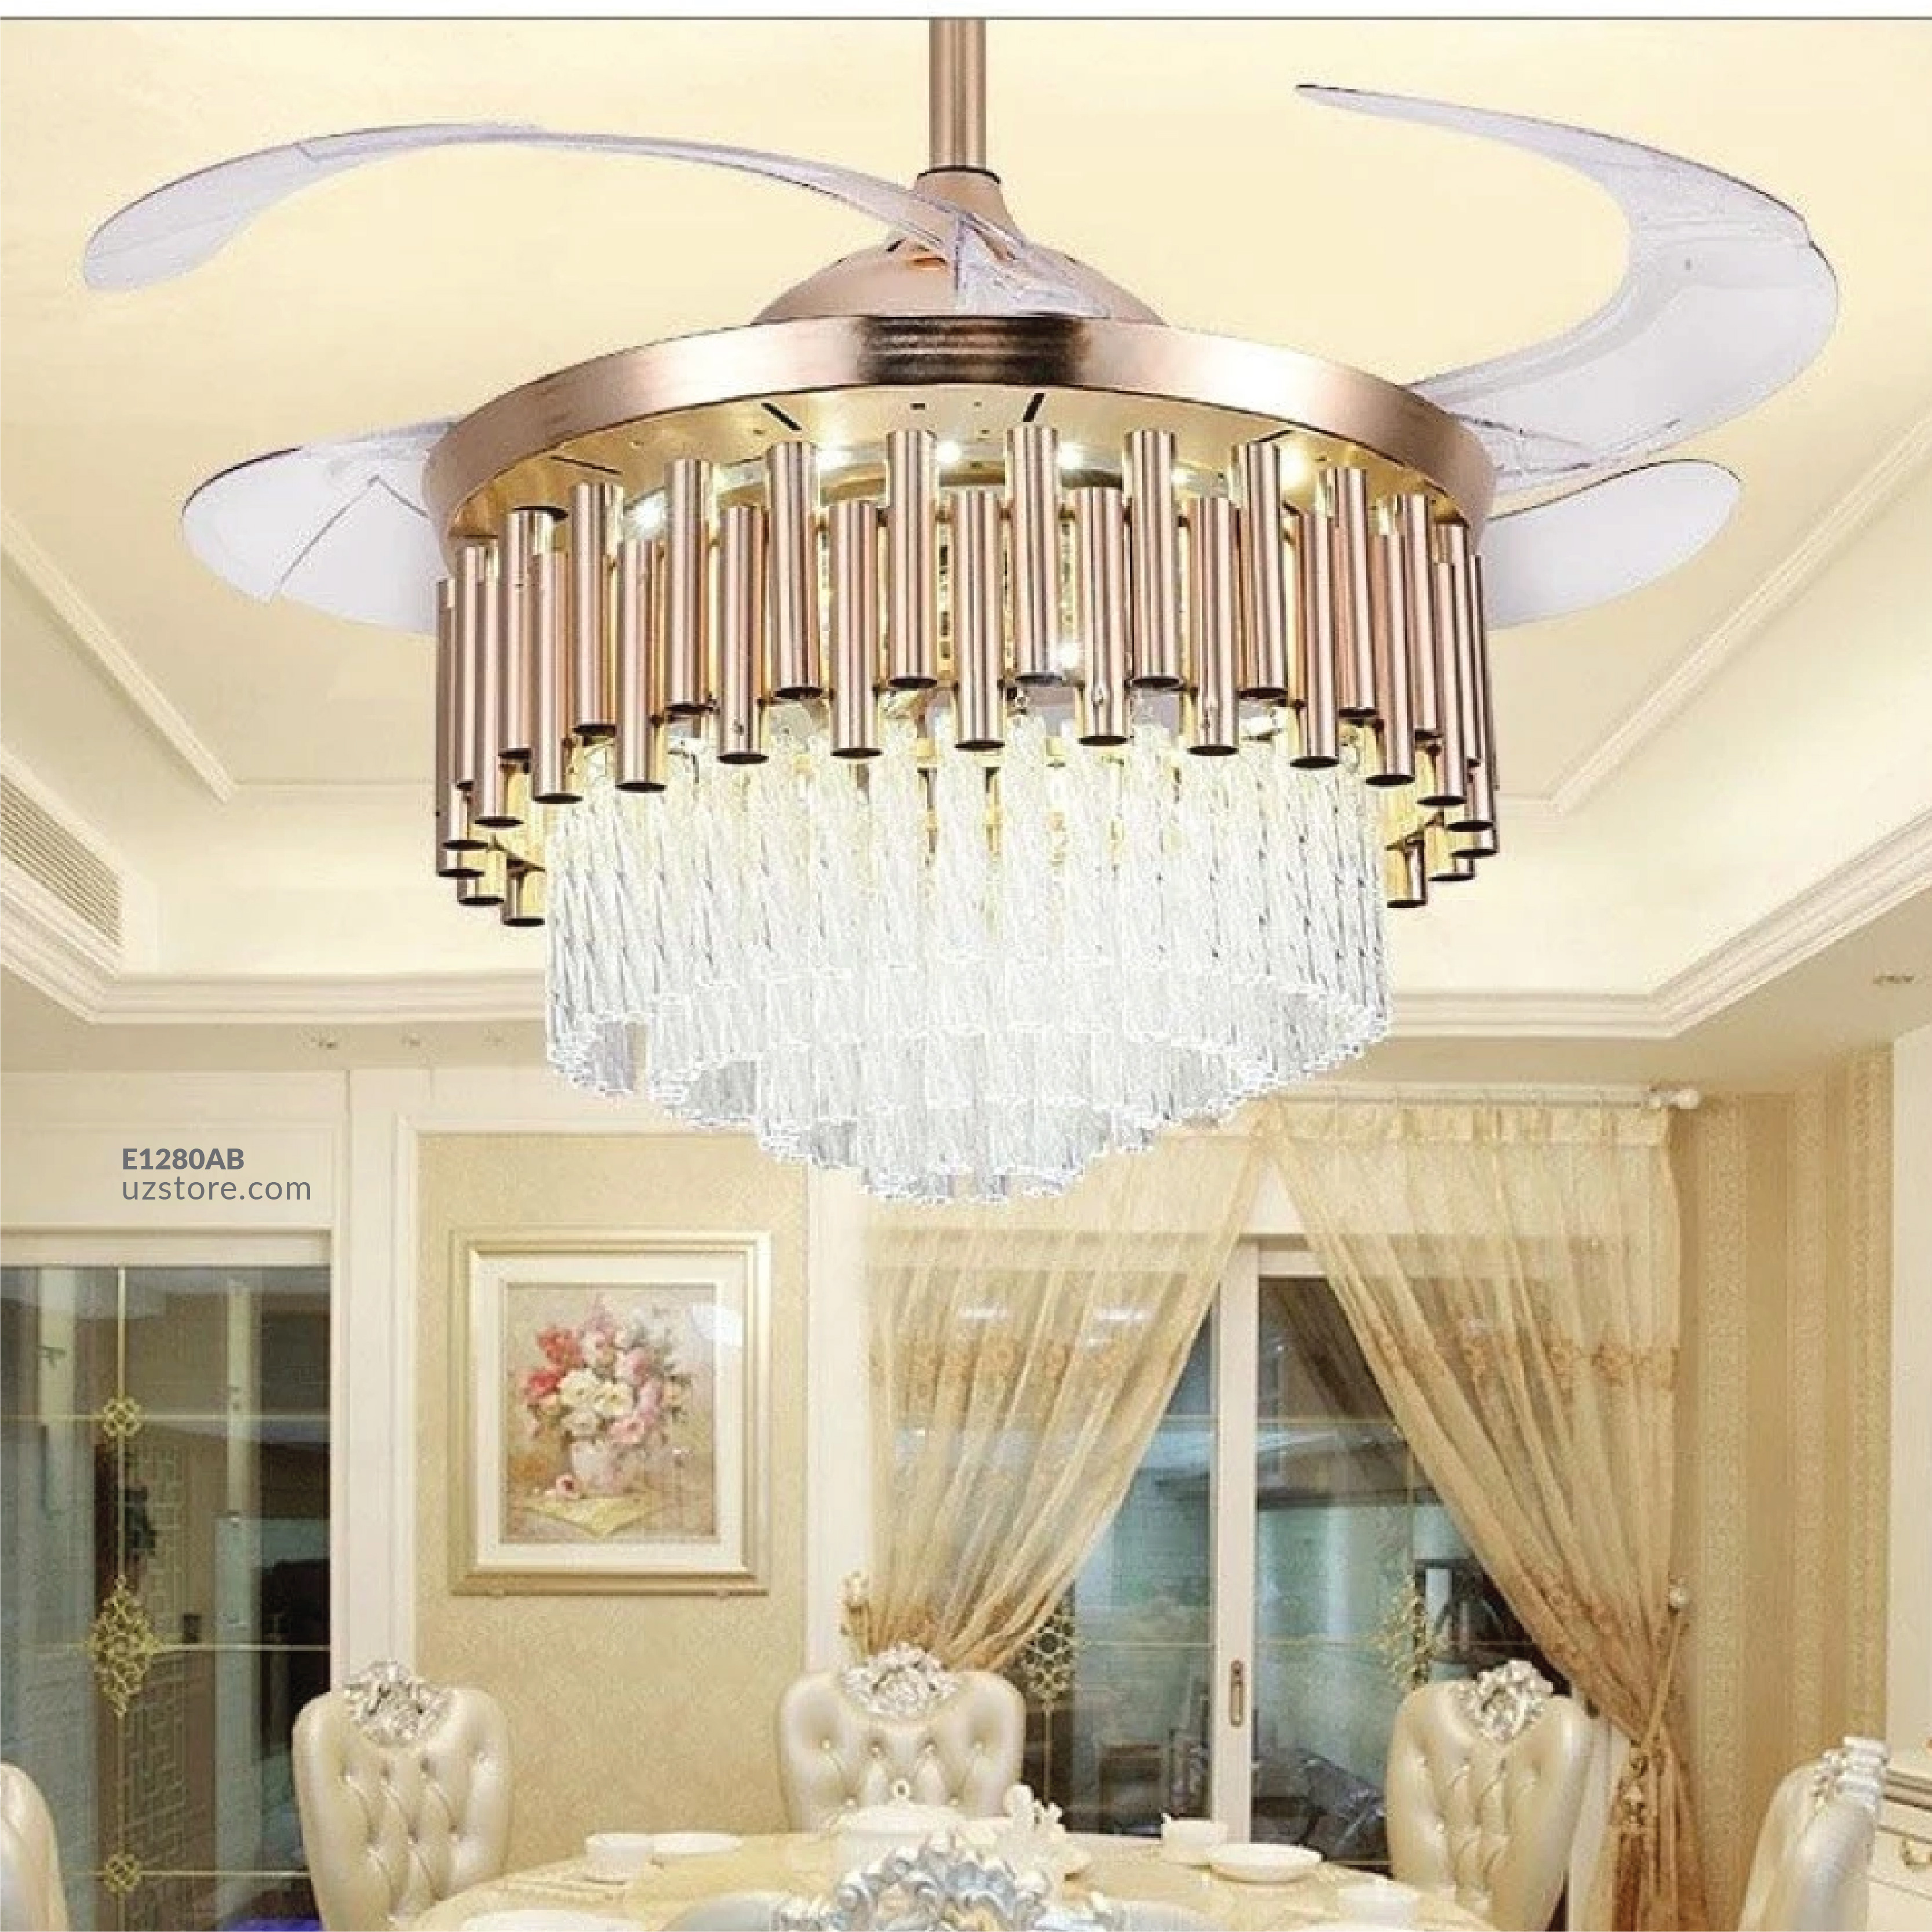 Decorative Fan With LED 3042- 9135